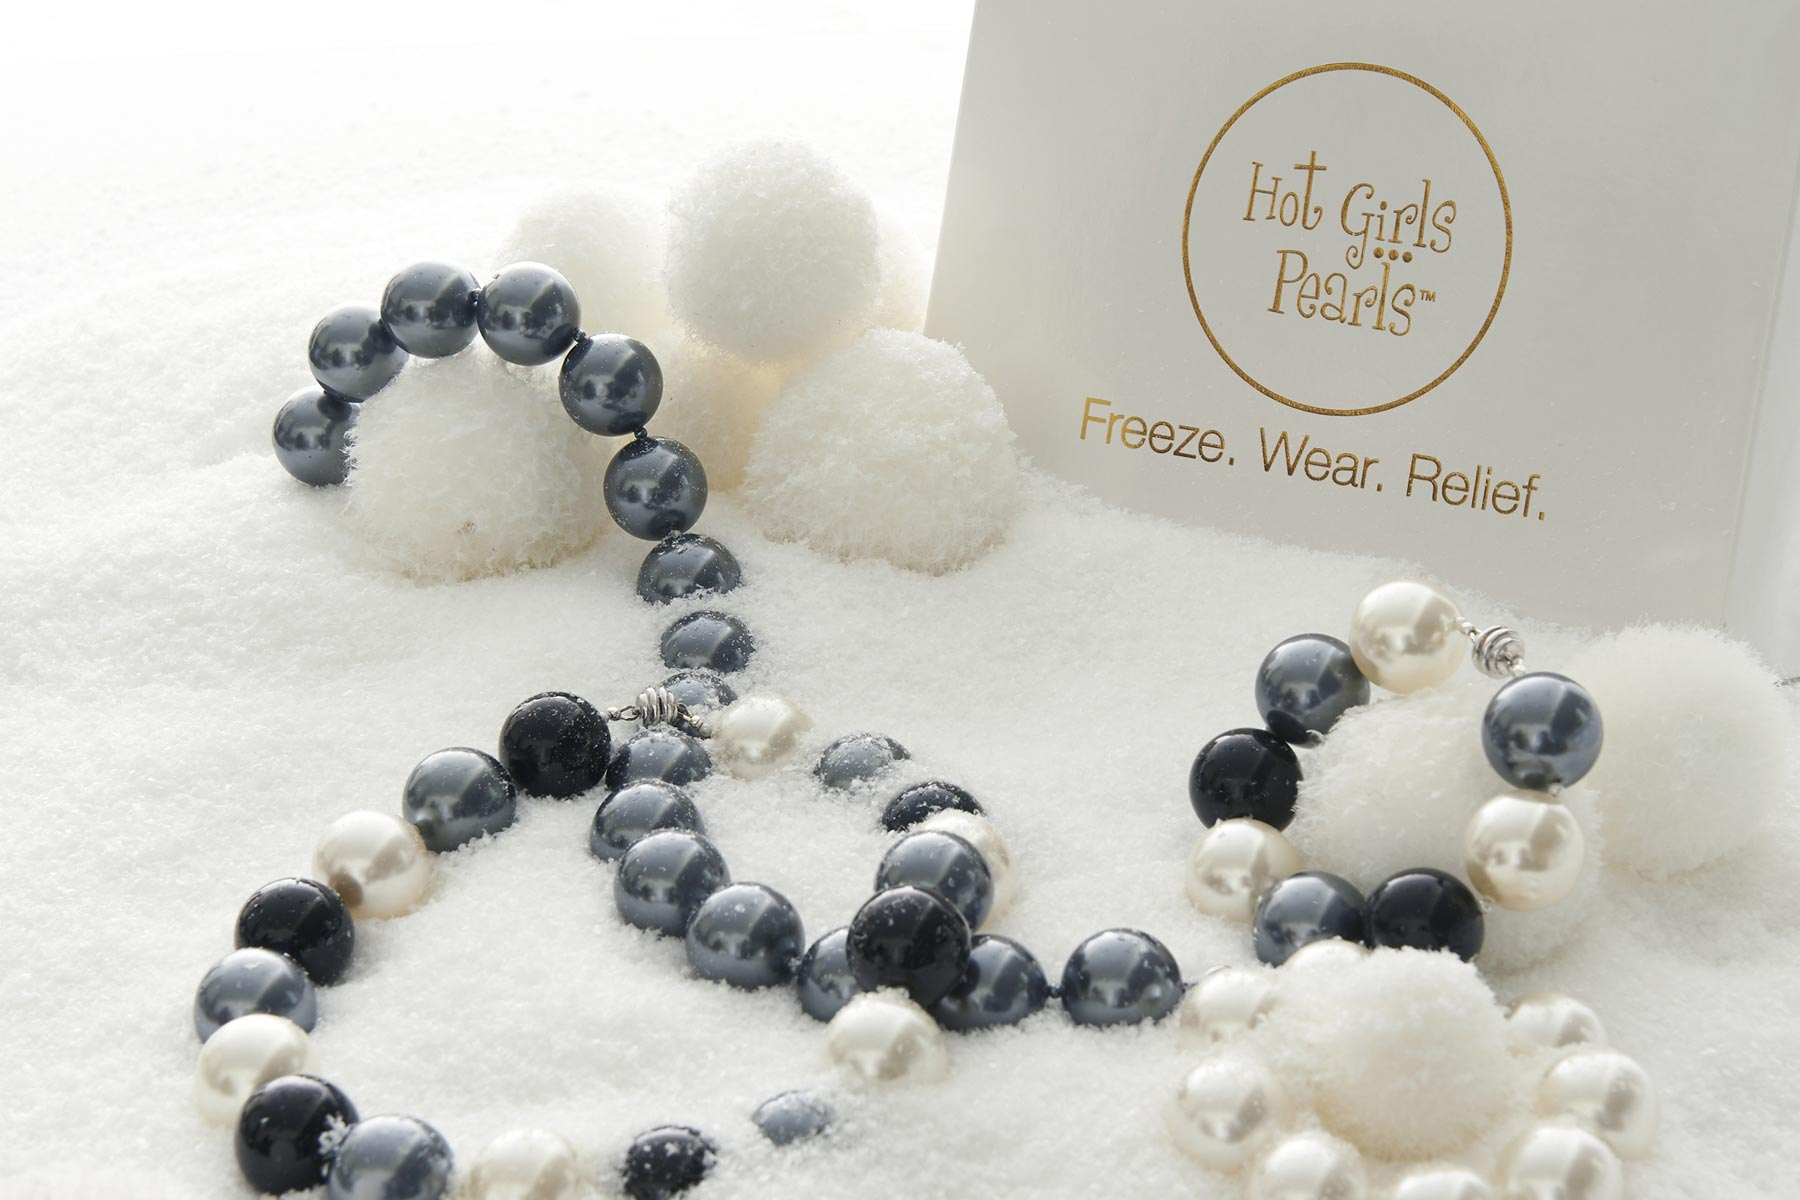 Freezable cooling jewelry - Hot Girls Pearls